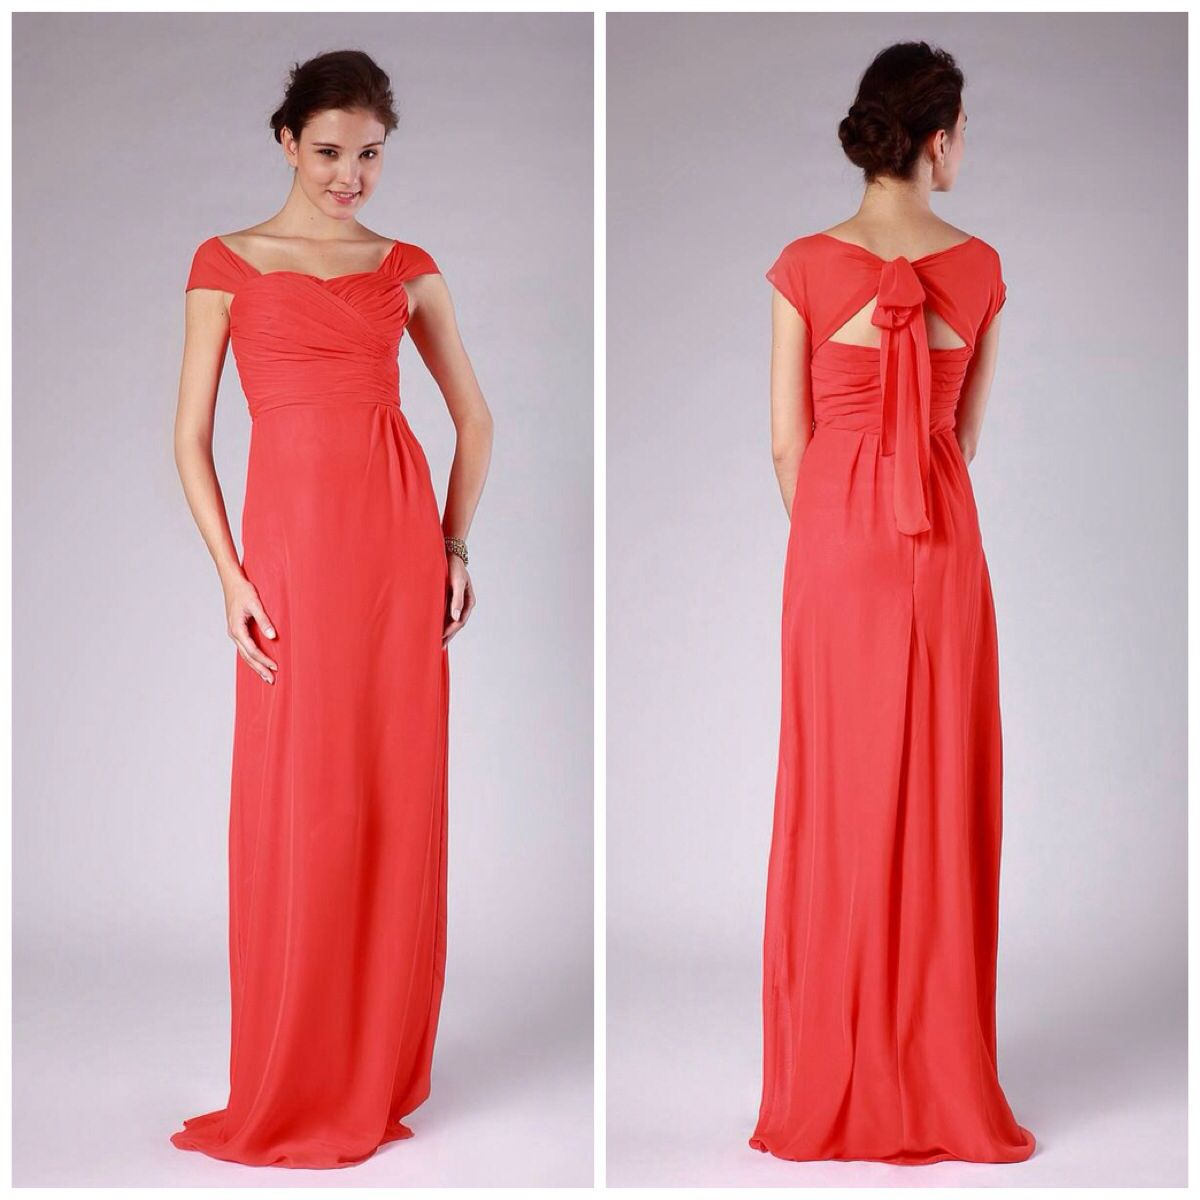 Plus size coral dress for wedding  Dark coral bridesmaid dress  Fashiondresses  Pinterest  Coral